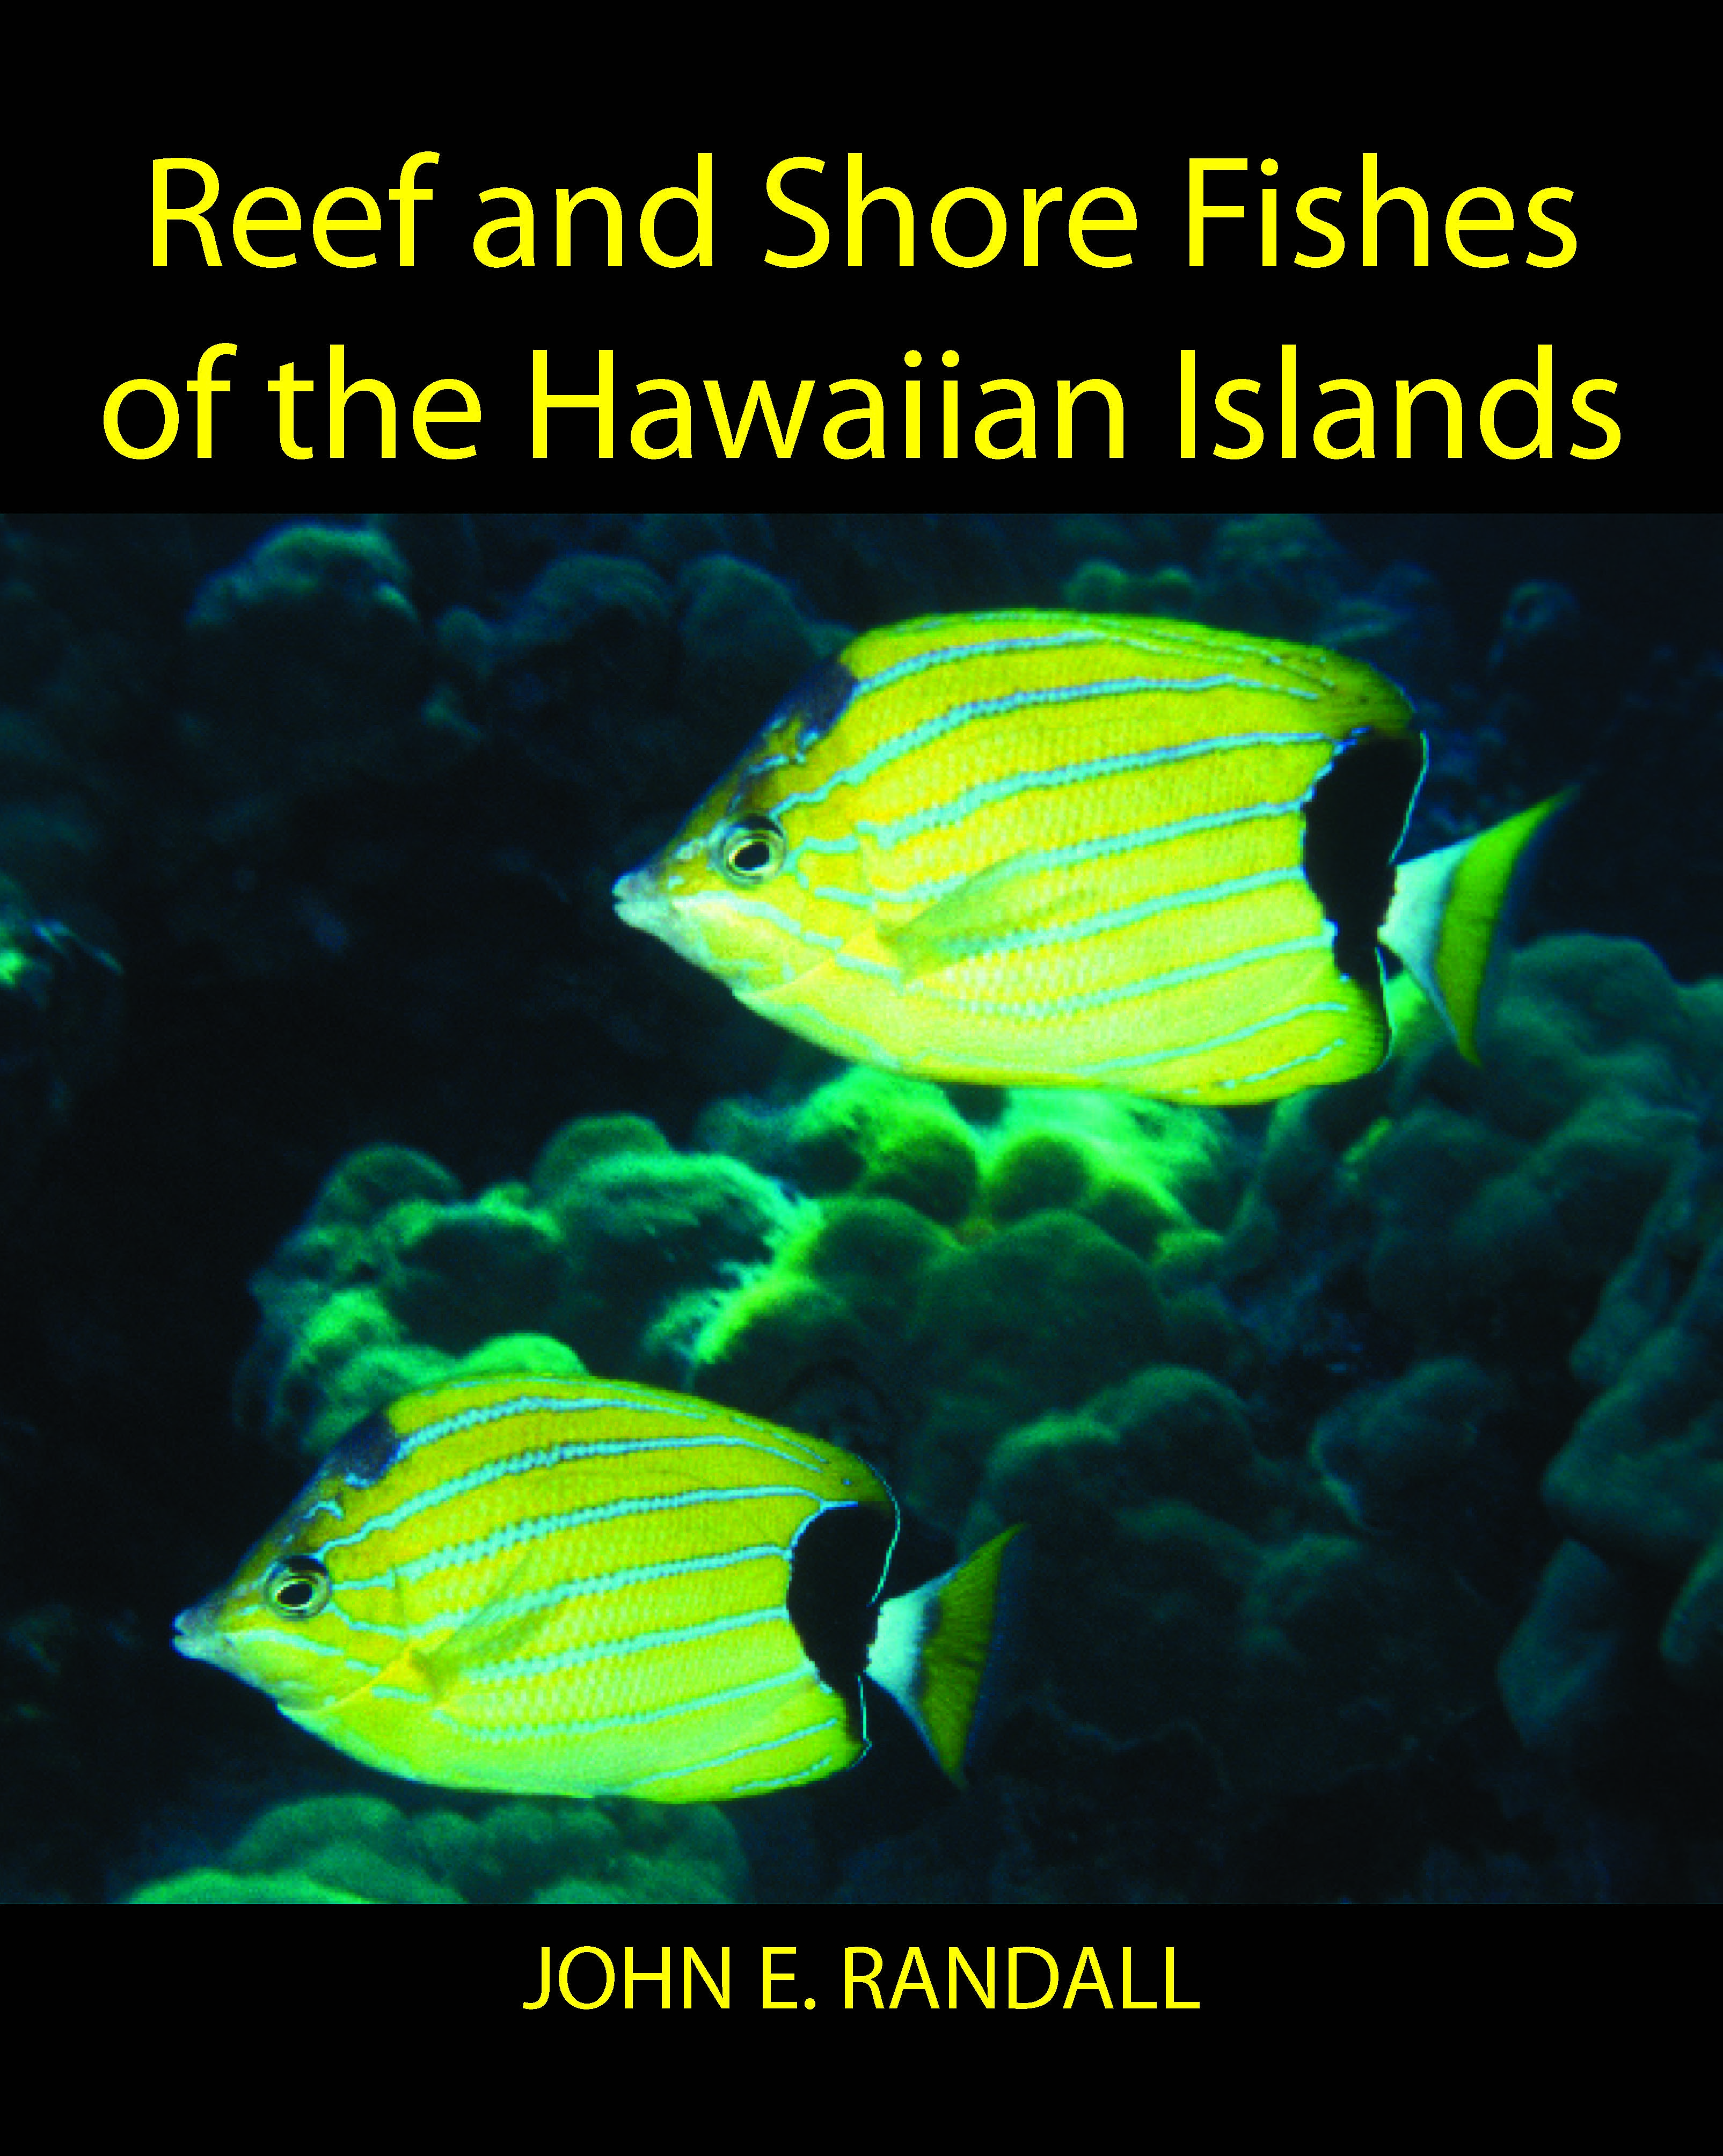 Reef and Shore Fishes of the Hawaiian Islands